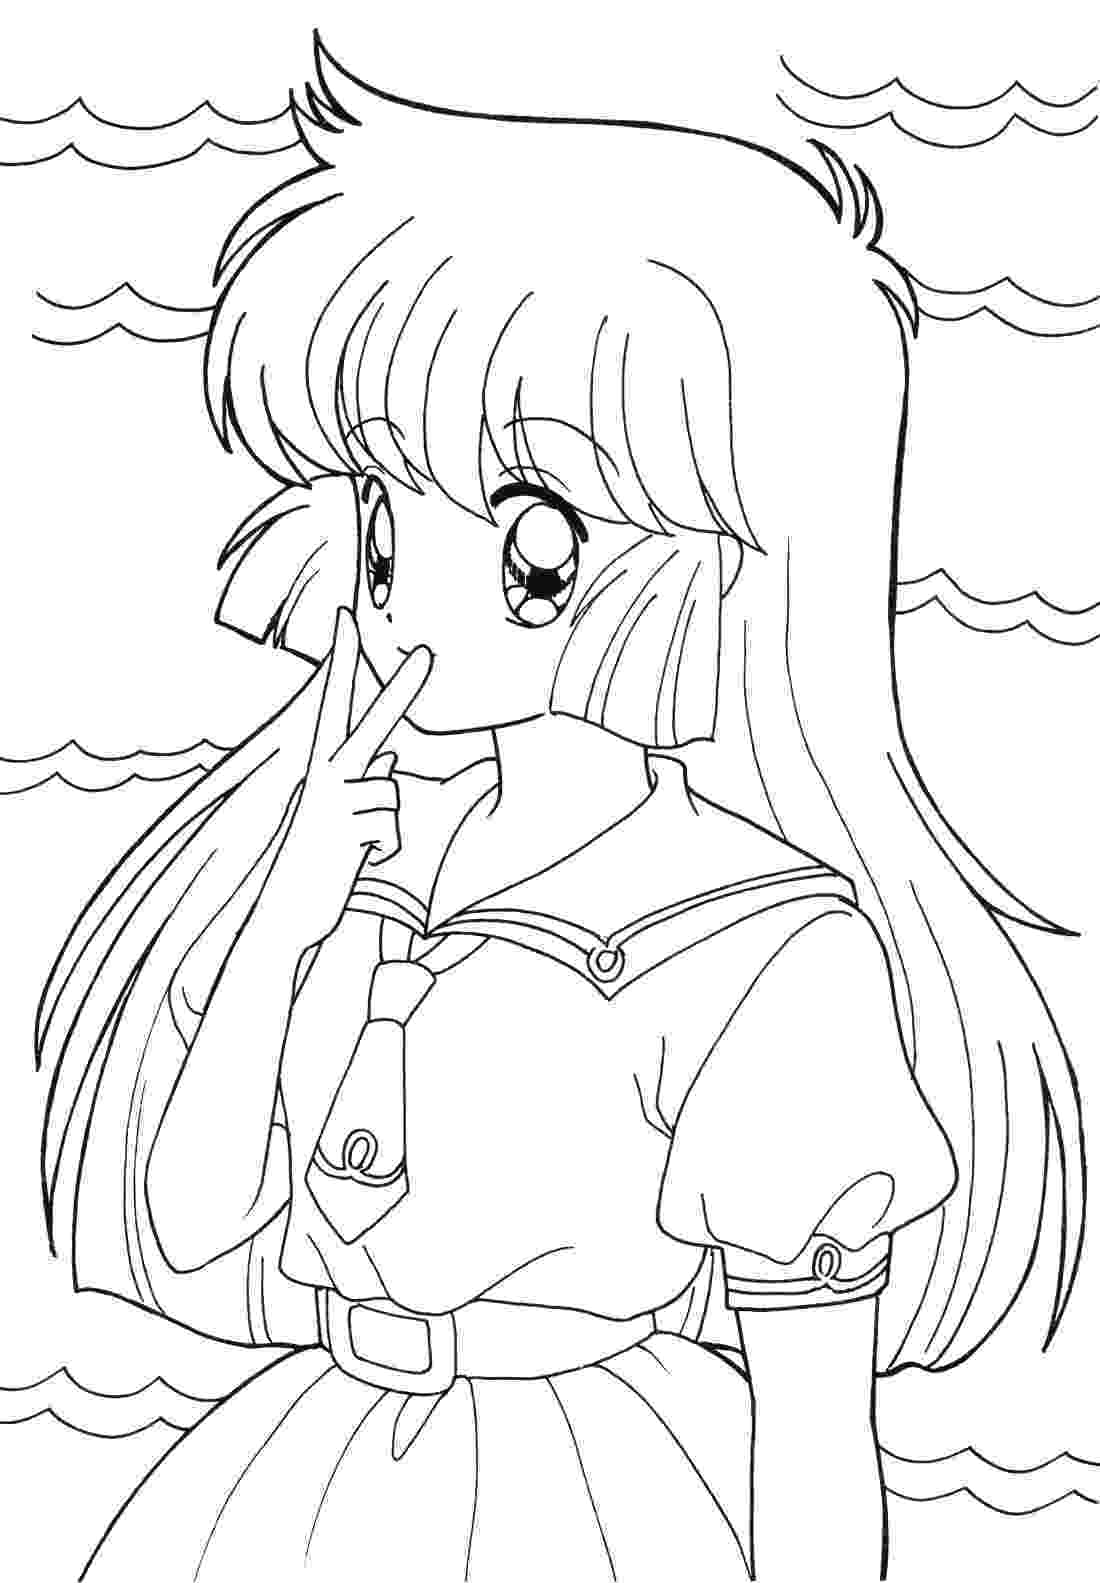 coloring pages manga anime coloring pages best coloring pages for kids pages coloring manga